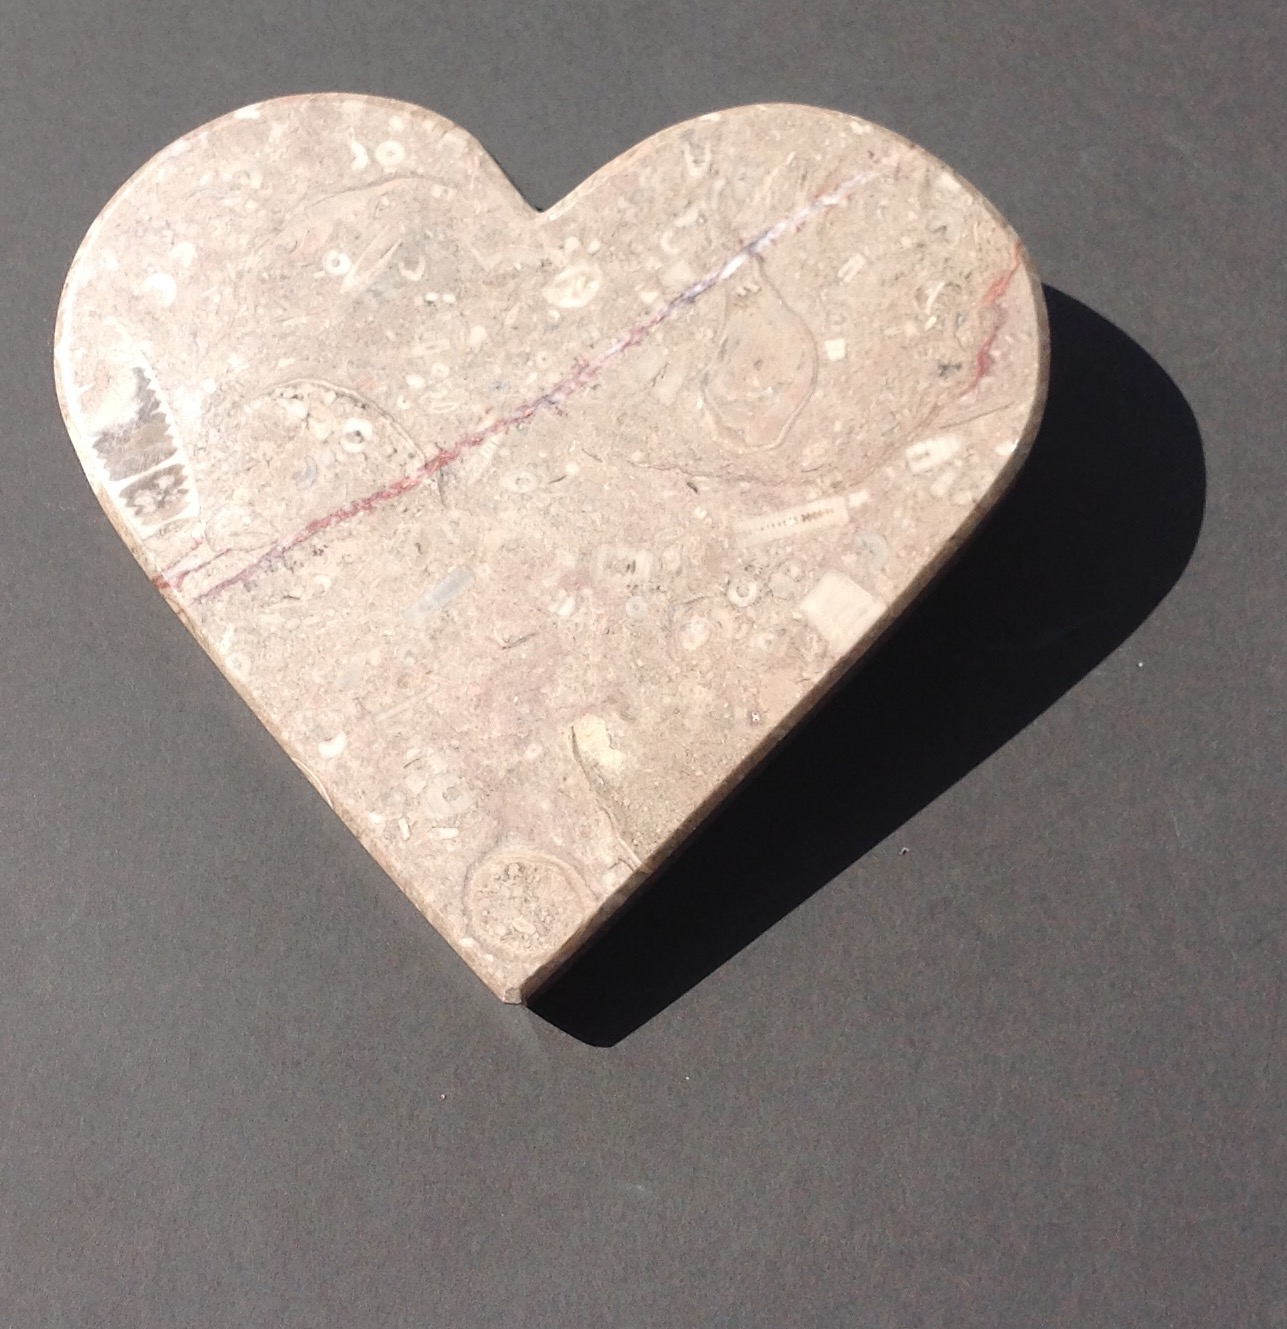 heart picture 2